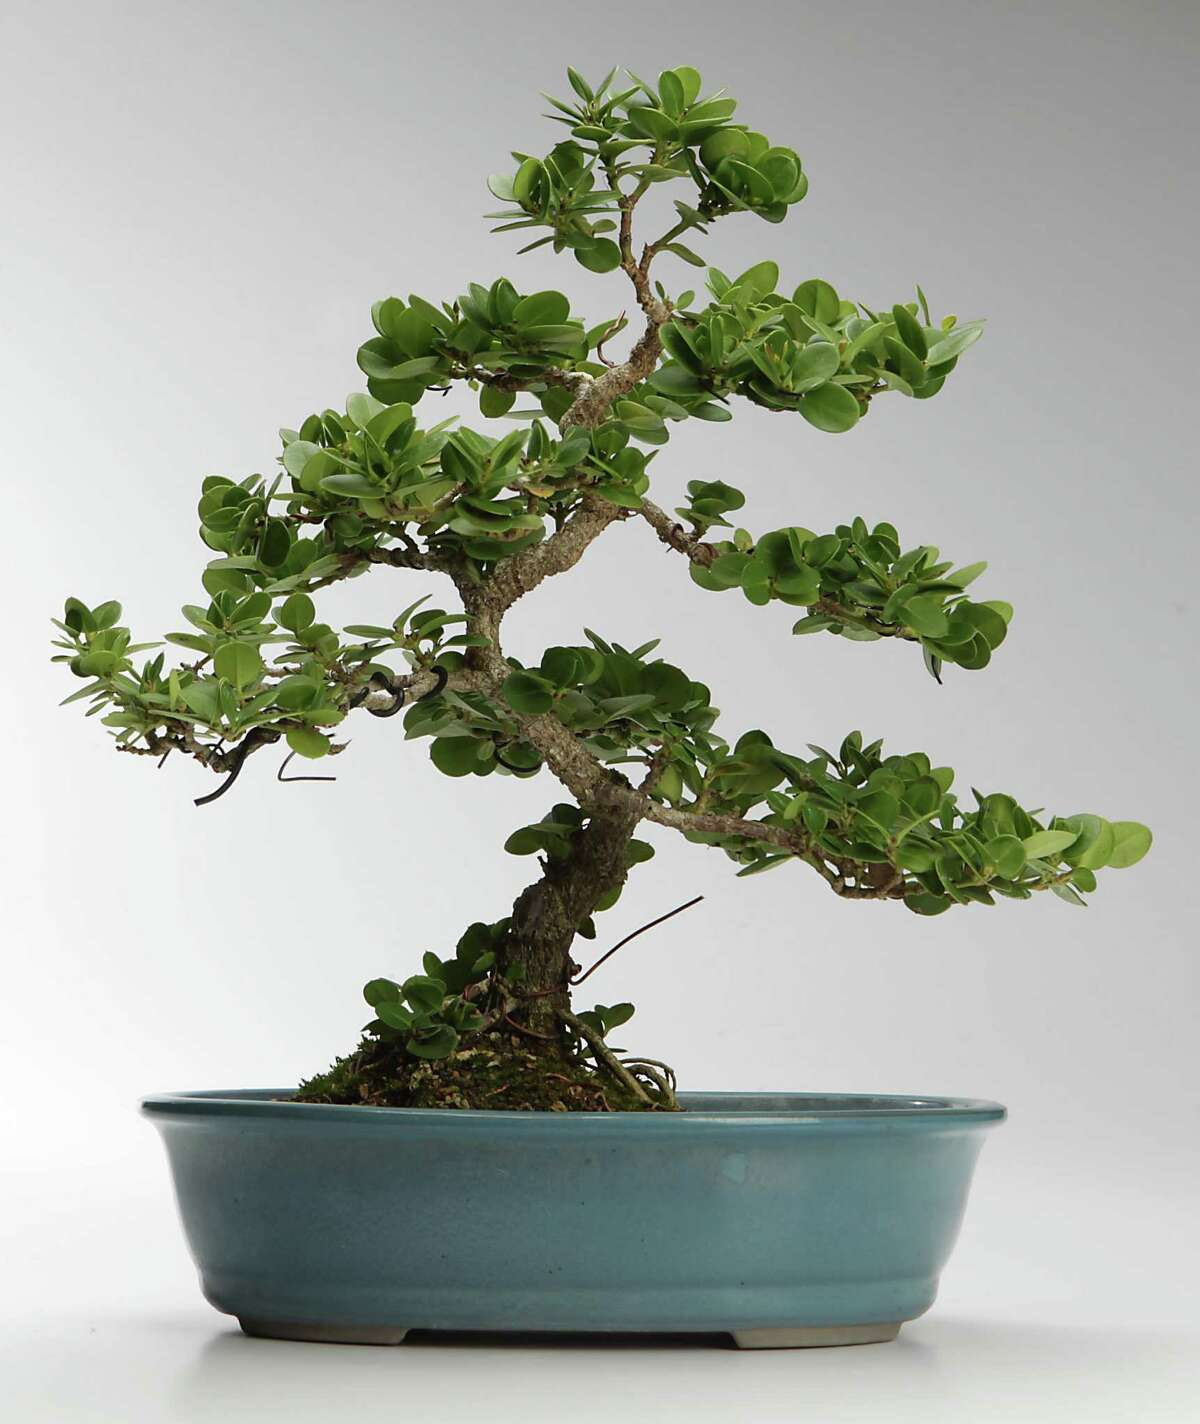 Bonsai Creates A Gardening Illusion